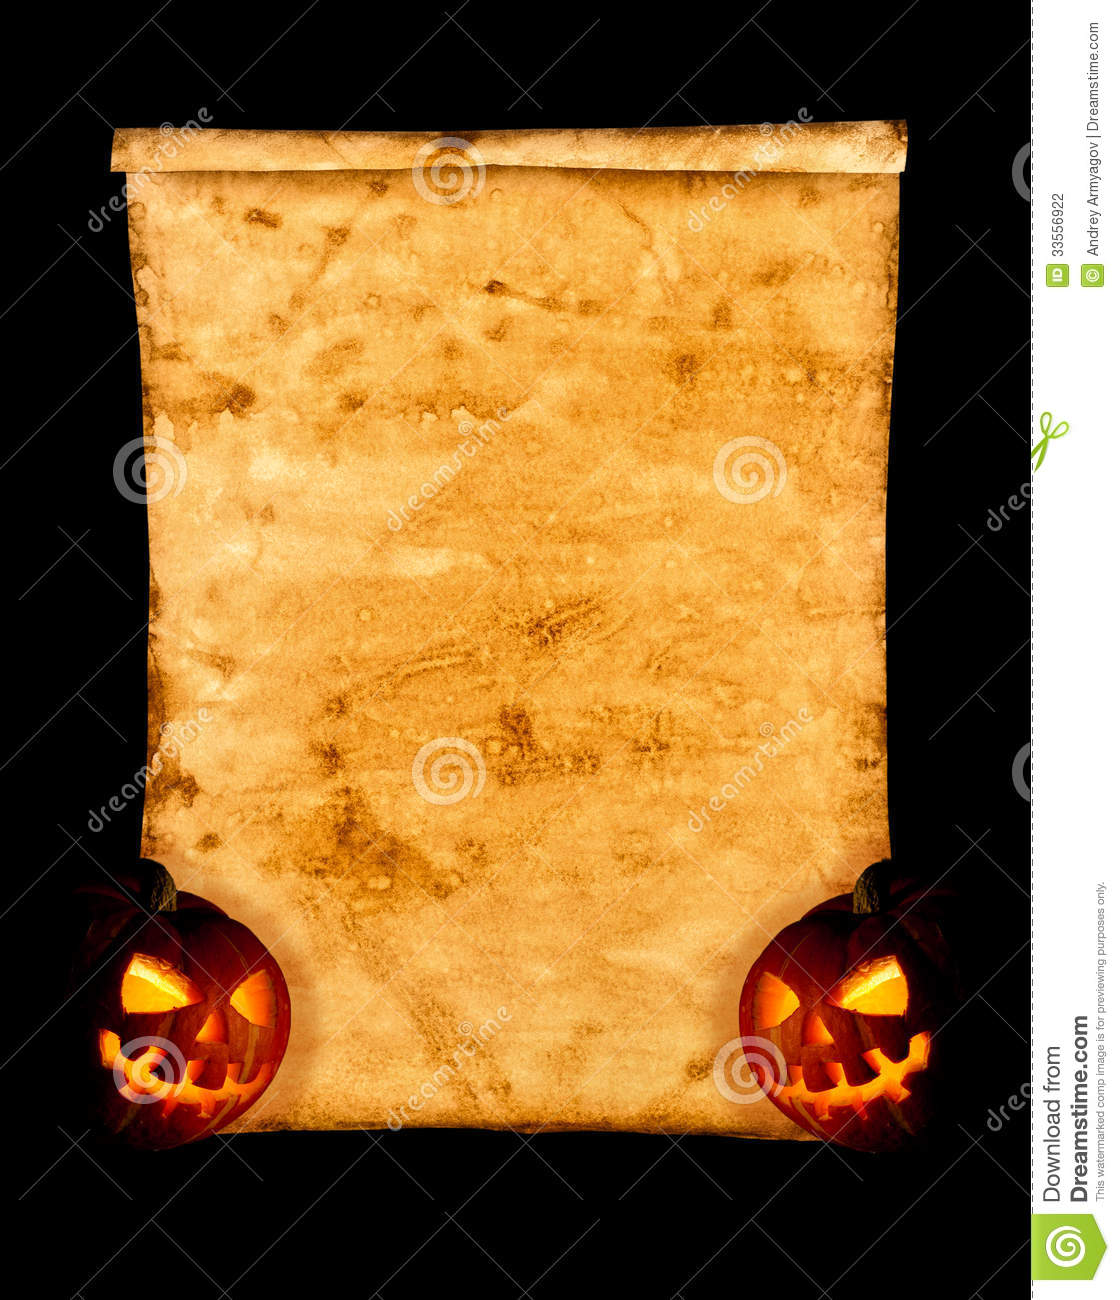 3d Wallpaper Decorating Ideas Halloween Background Stock Photography Image 33556922